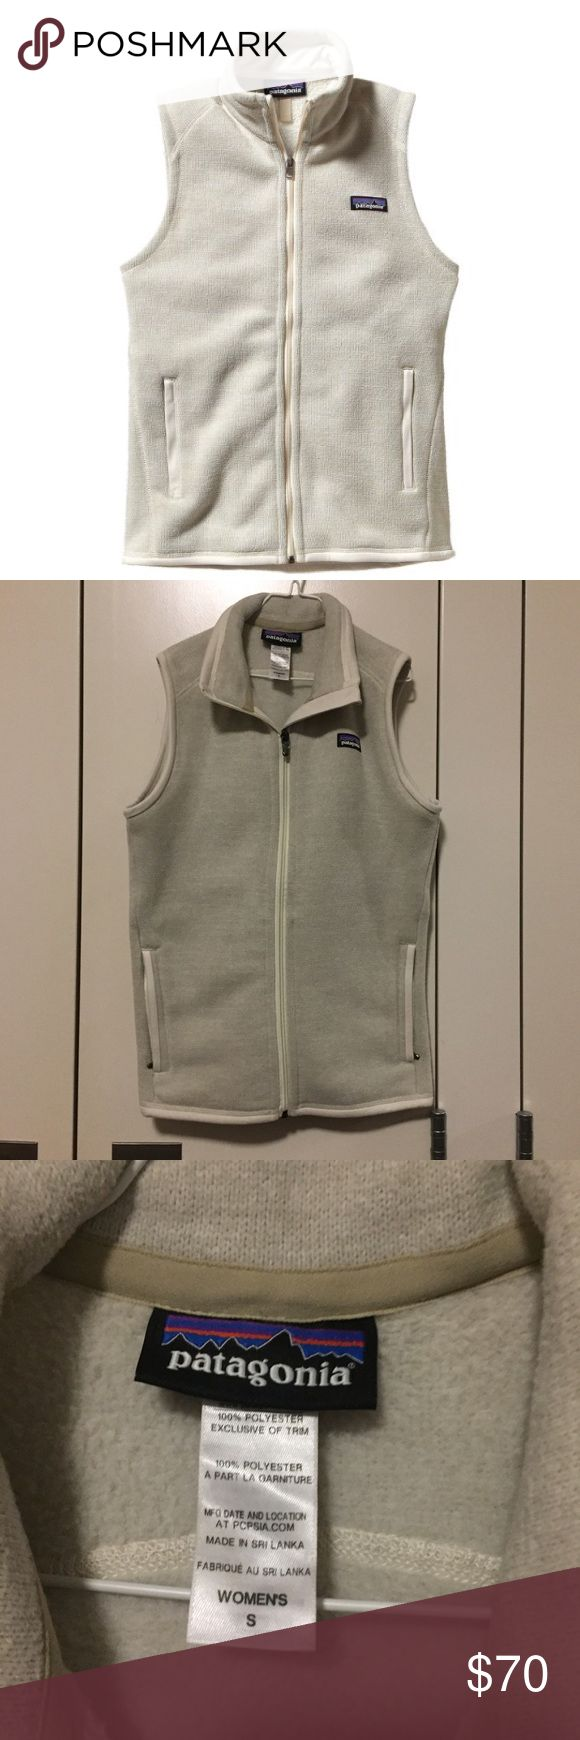 Patagonia Better Sweater Fleece Vest Light tan/cream colored Patagonia fleece vest! Lightly worn, but still in near perfect condition! Somewhat firm on my price because it's in such good condition, but feel free to make an offer! Patagonia Jackets & Coats Vests